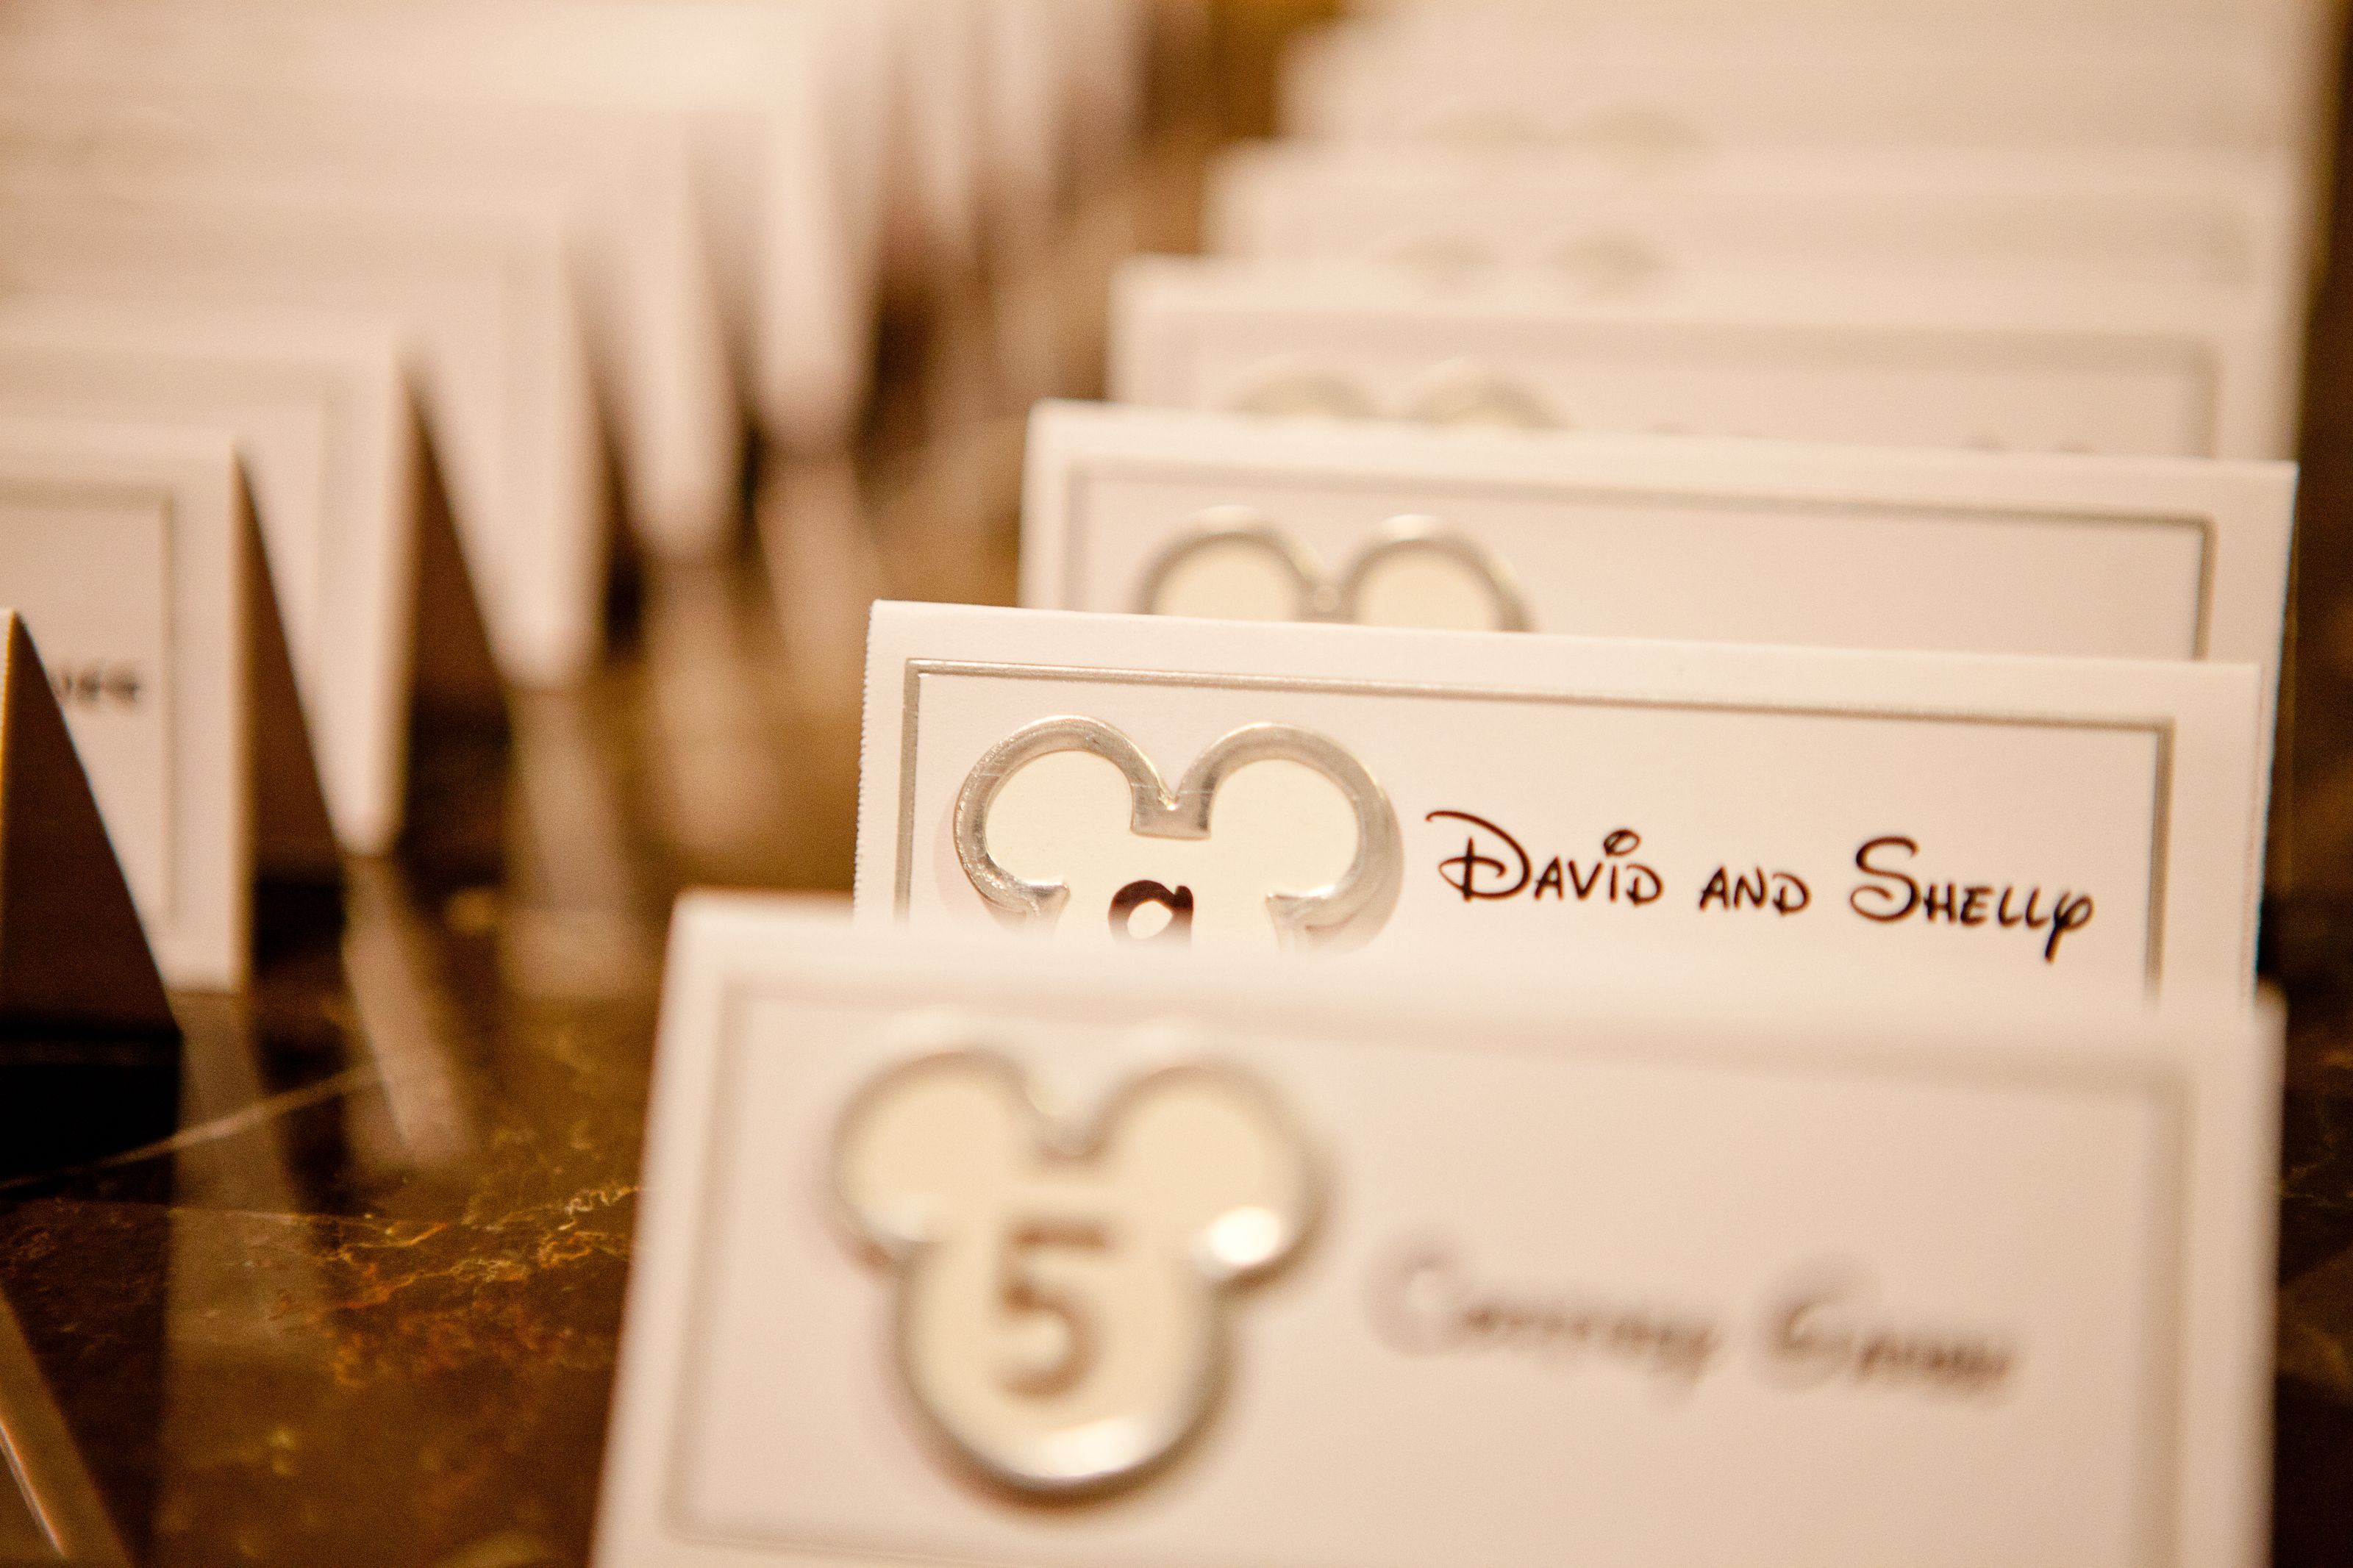 We made our own place cards with scrapbooking stickers and Disney